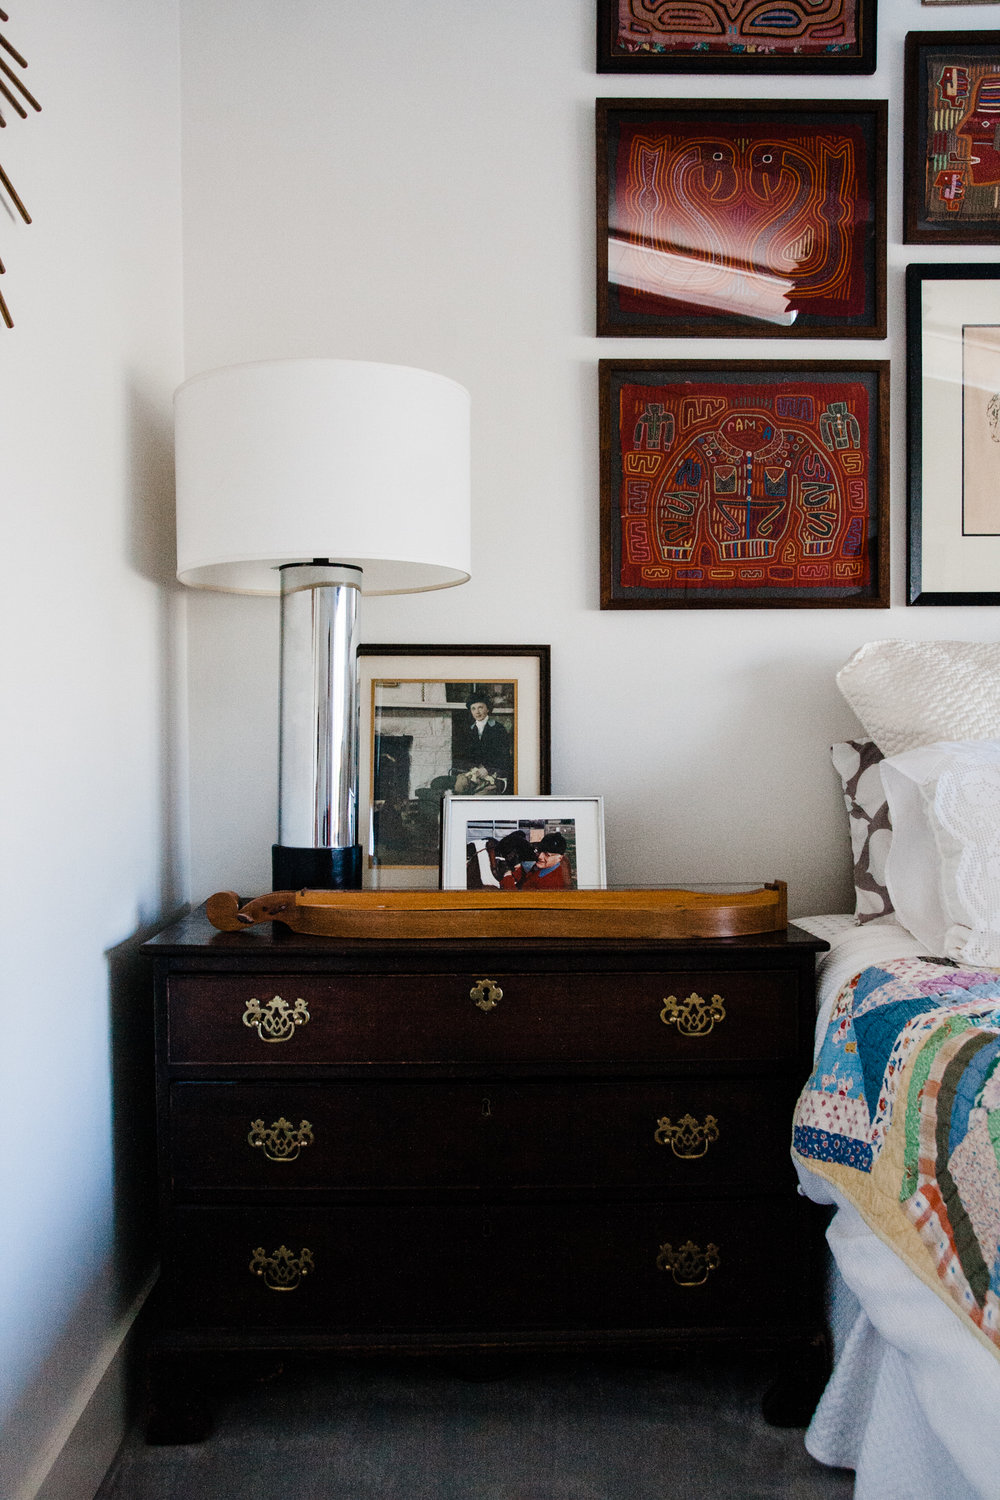 Guests could now use this smaller dresser for storage if needed, making the larger dresser on the opposite wall unnecessary.